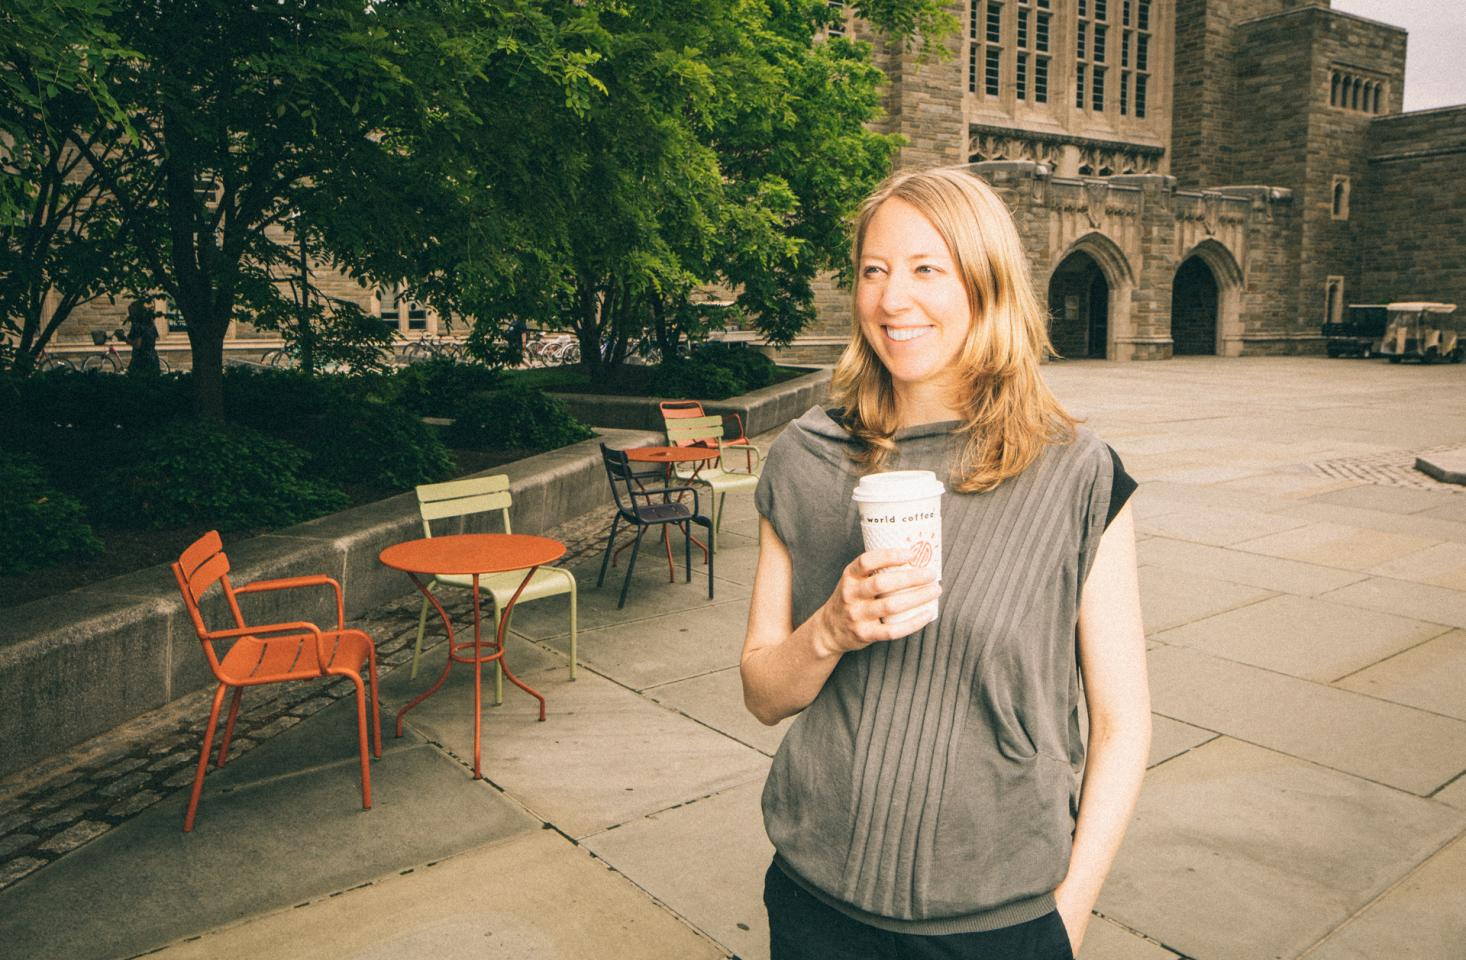 Brooke Holmes standing in courtyard holding coffee cup smiling